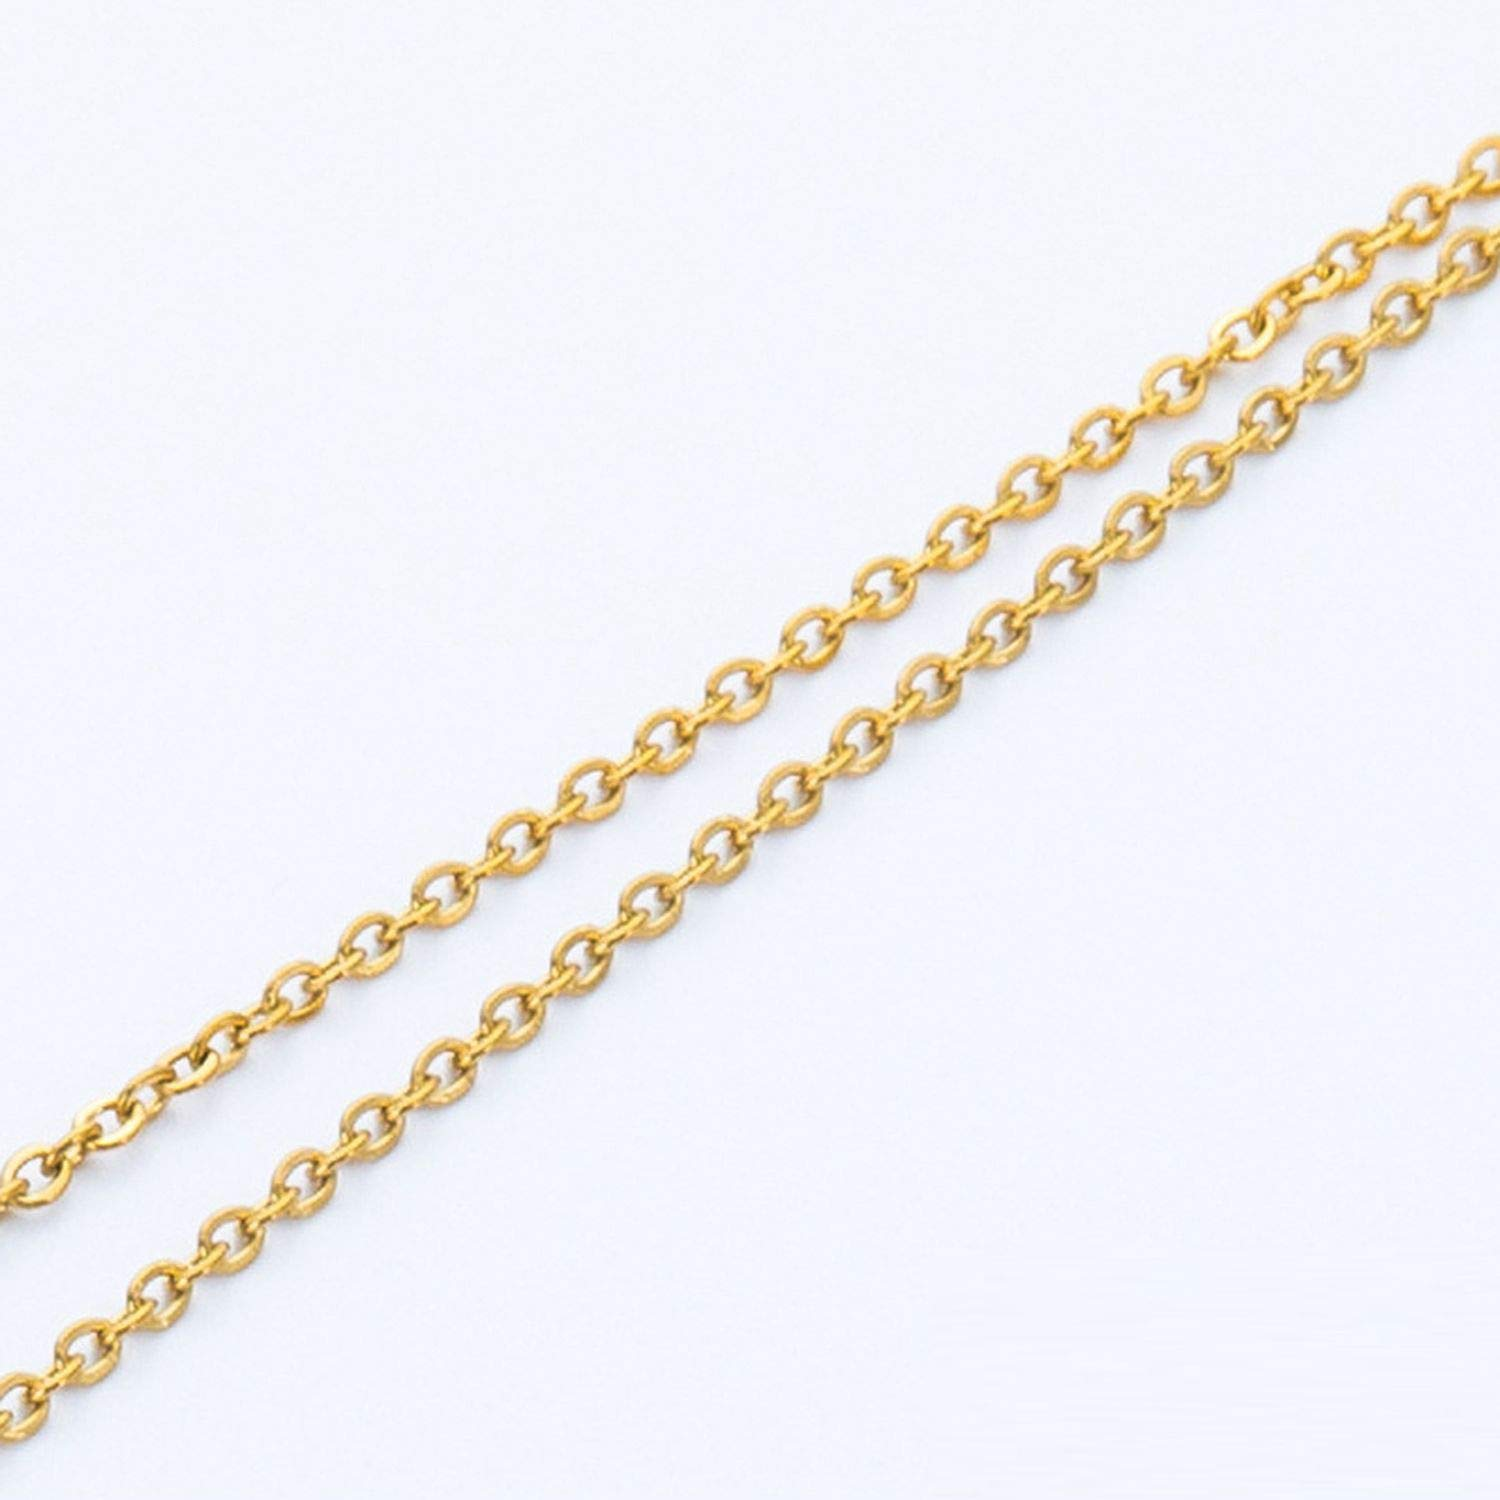 Gold Plated Titanium Steel Link Chain Eyeglasses Chains Glasses Rope Holder Sunglasses Strap Cord Neck Band Accessories